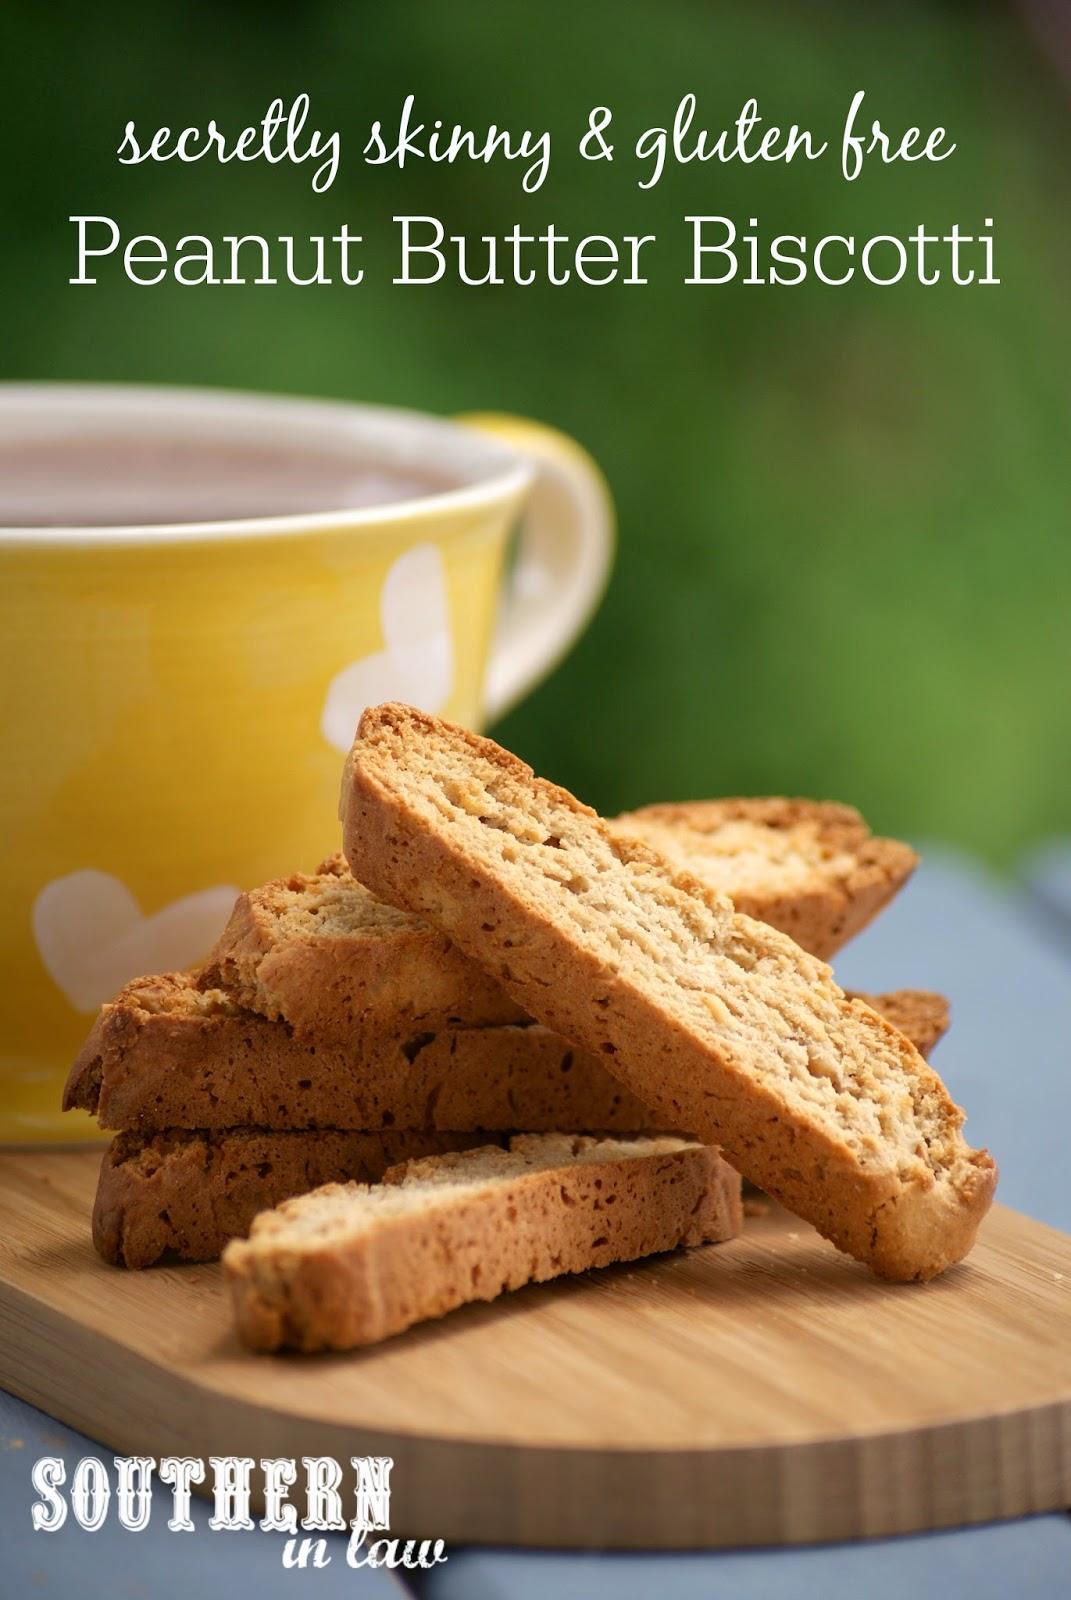 Gluten Free Peanut Butter Biscotti Recipe - low fat, low sugar, gluten free, clean eating friendly, healthy biscotti recipe